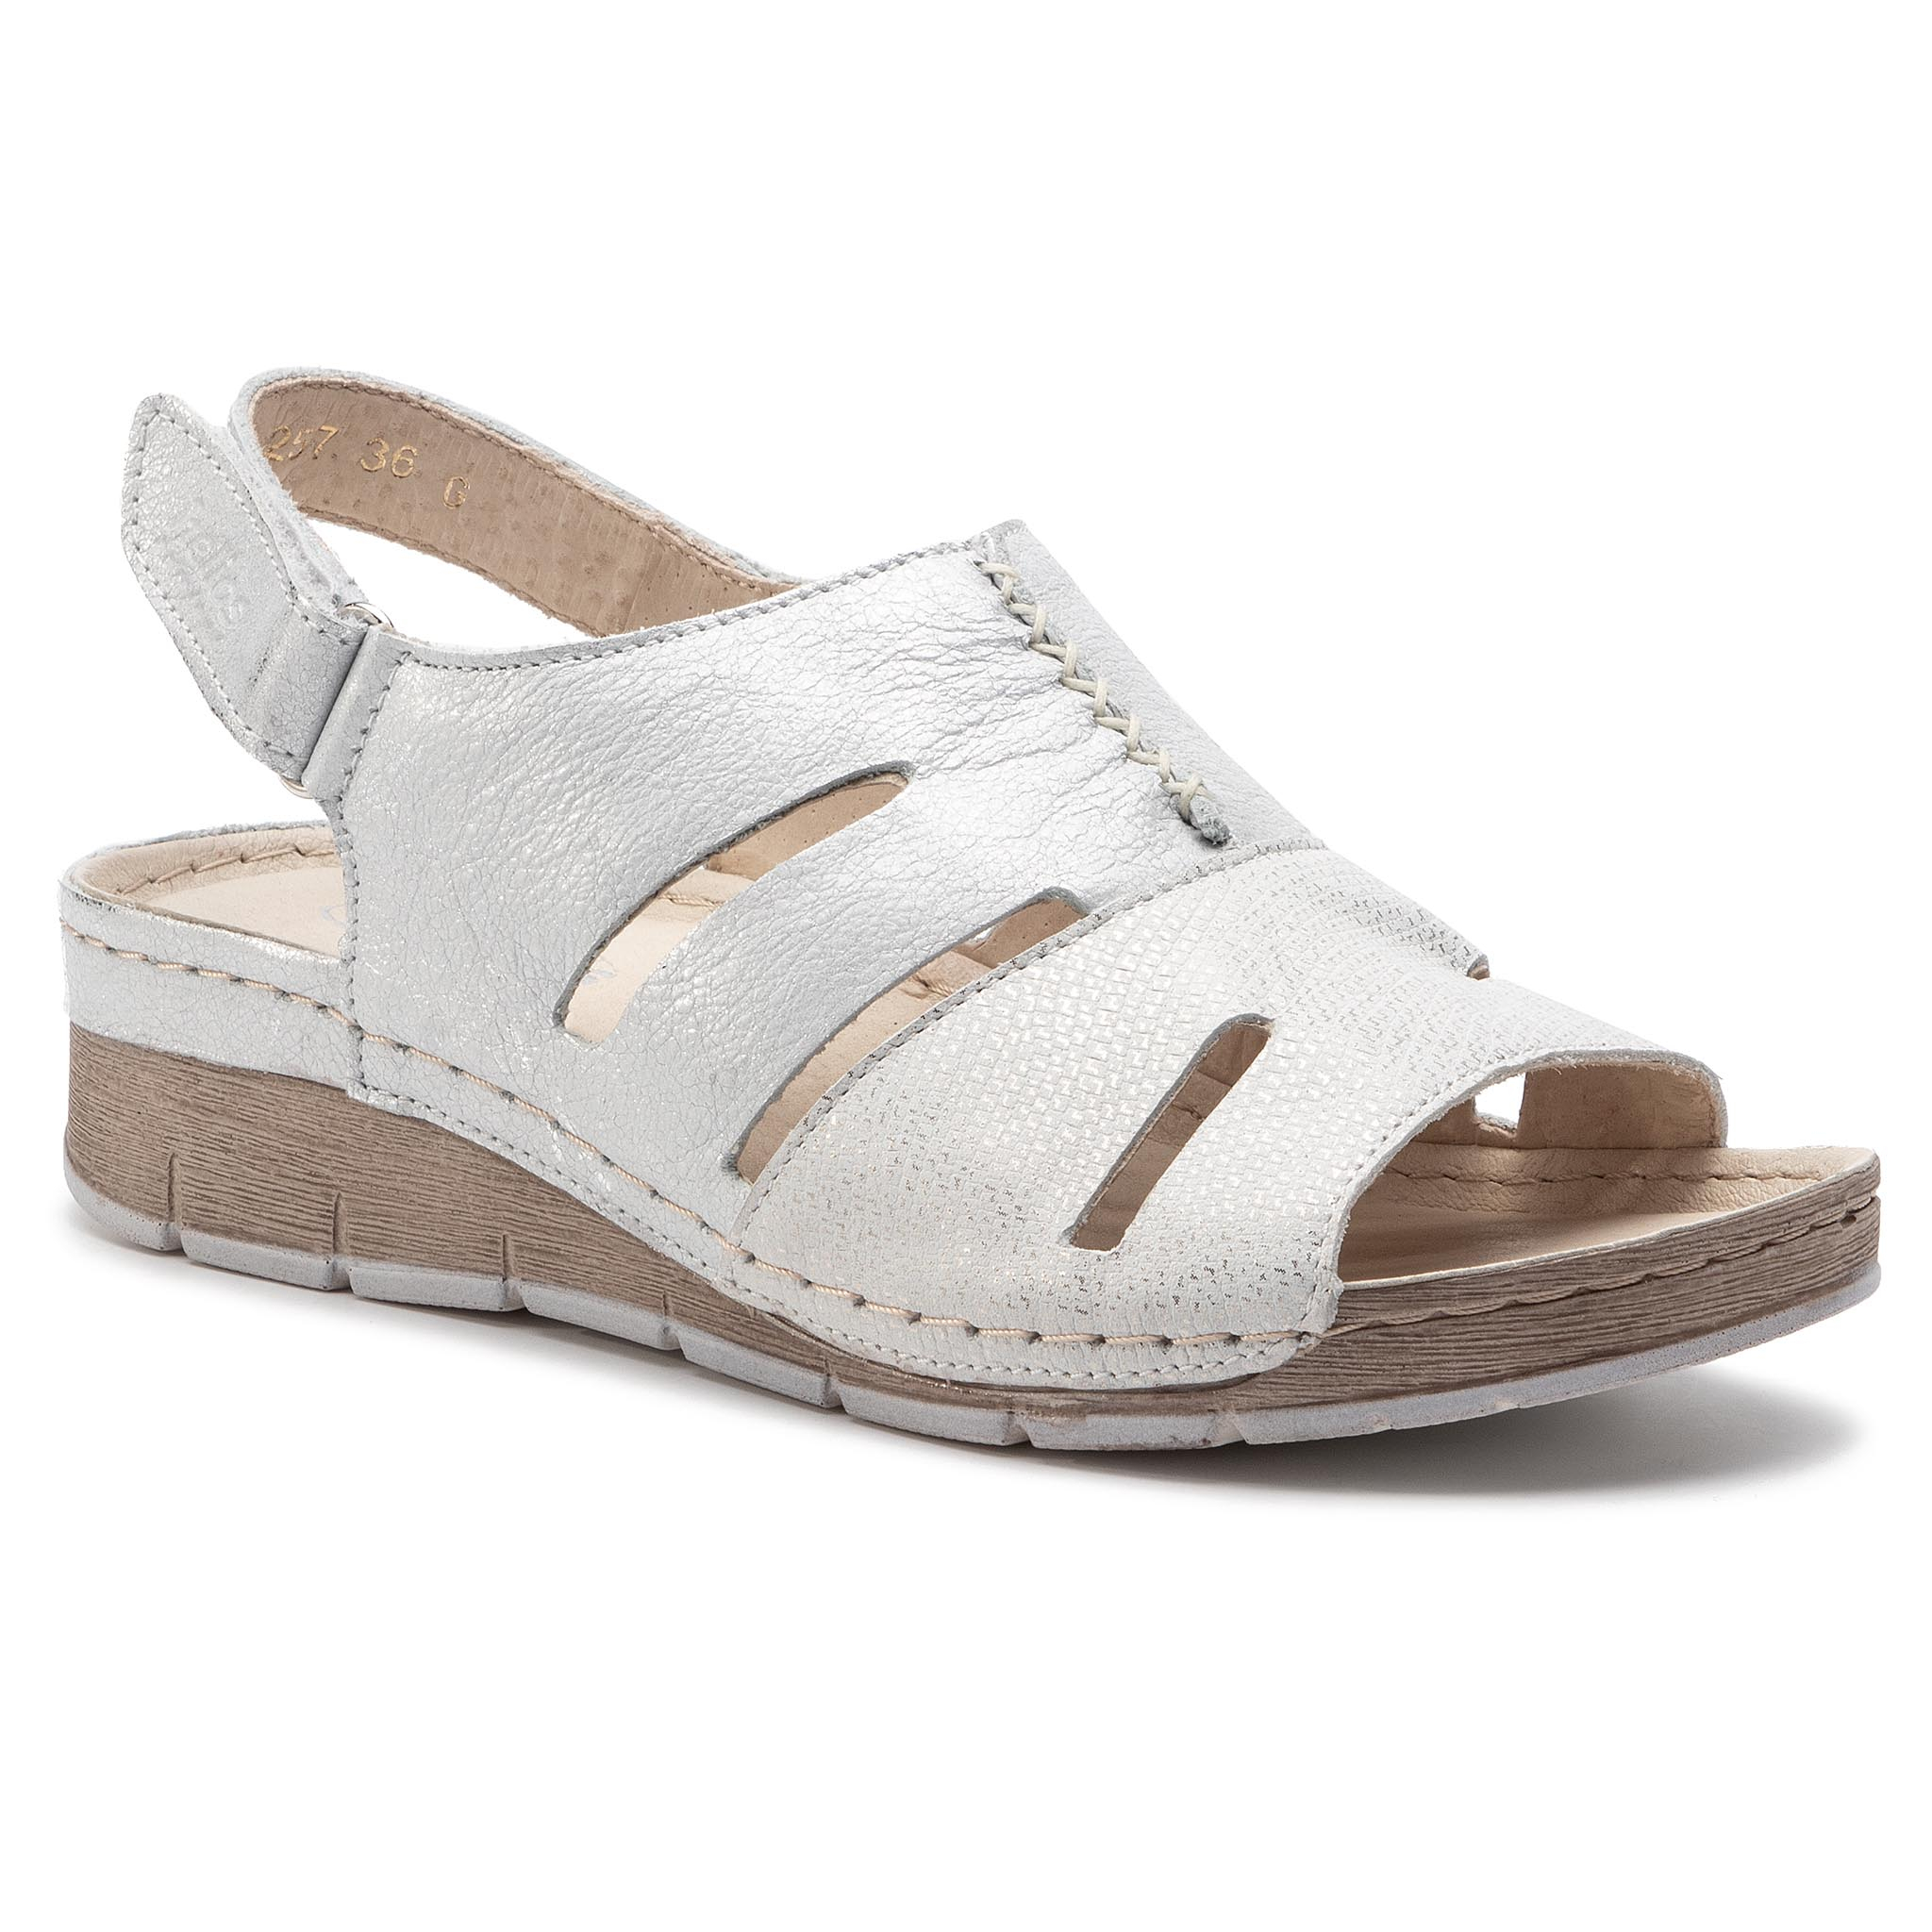 Lanny Blue Sandals Jq435lcar And Sky Mephisto Mules L3025 Wedges 0nwOP8Xk